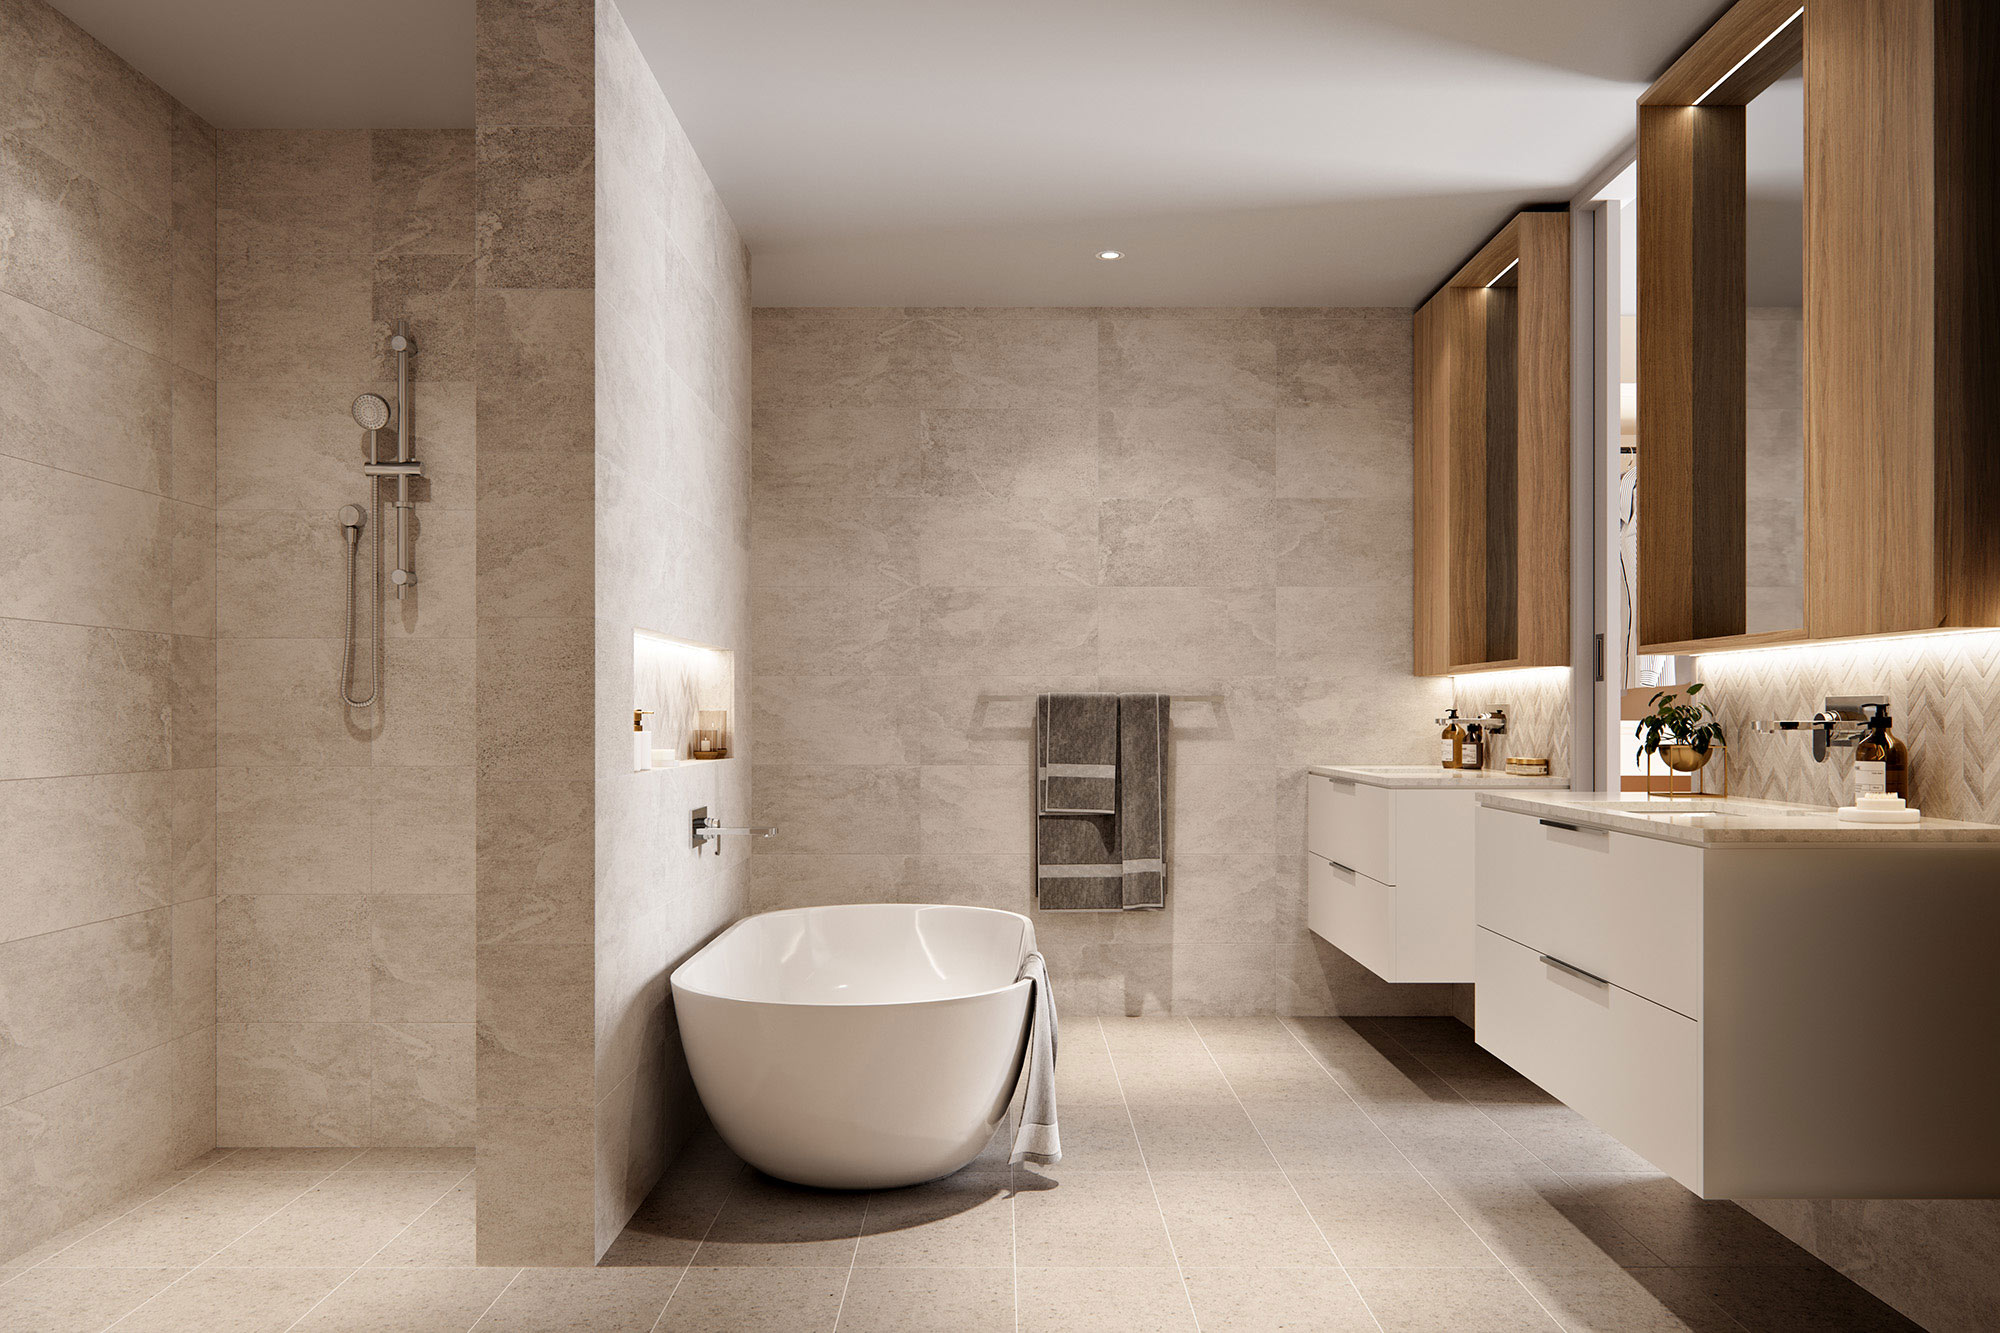 bathroom-render-1.jpg